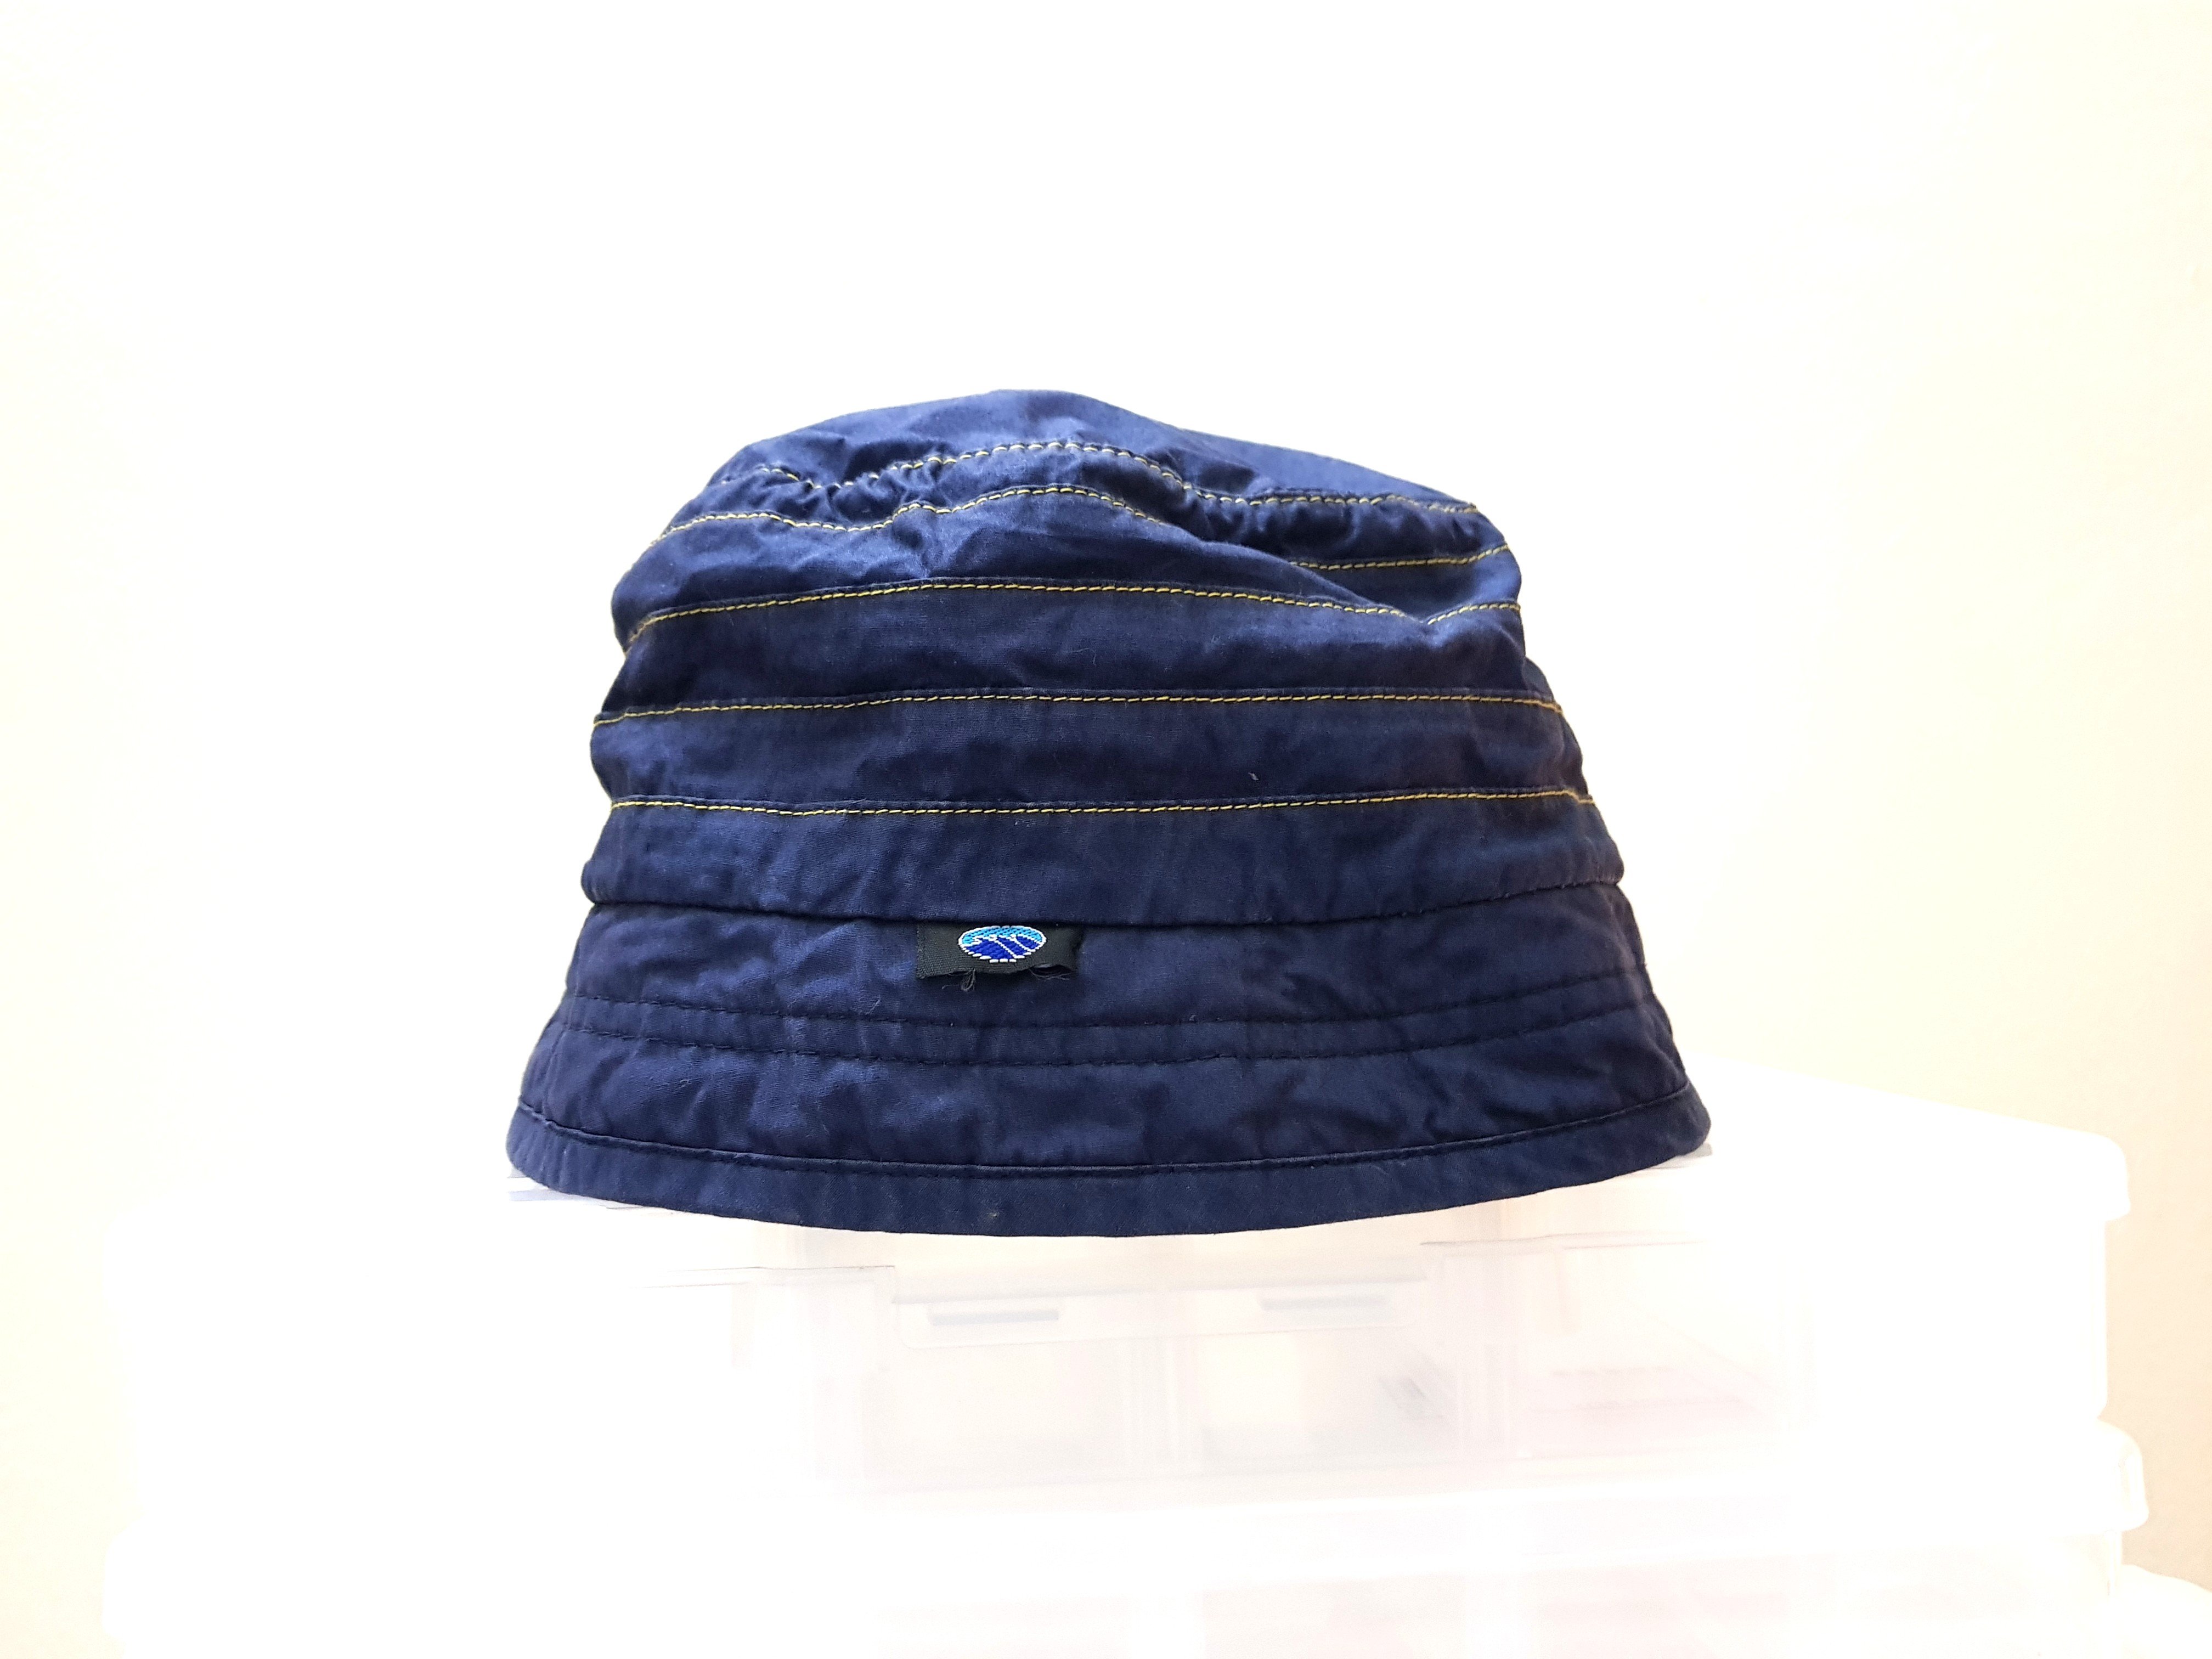 d84a3f714 *postage included* Sunbreak Hat